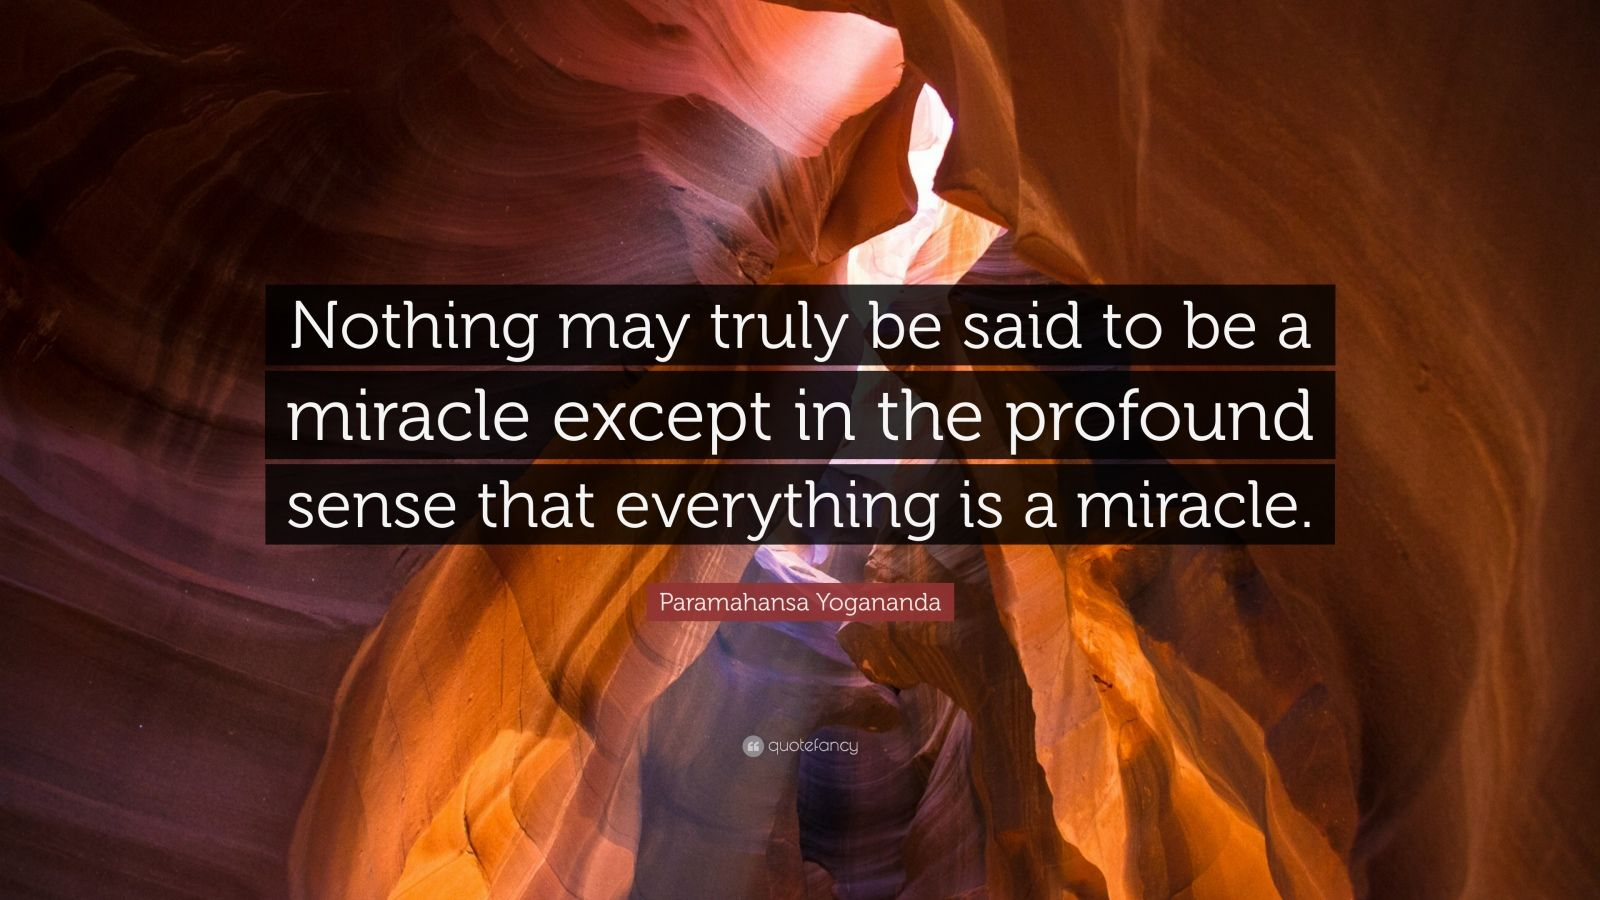 """Paramahansa Yogananda Quote: """"Nothing may truly be said to be a miracle except in the profound sense that everything is a miracle."""""""